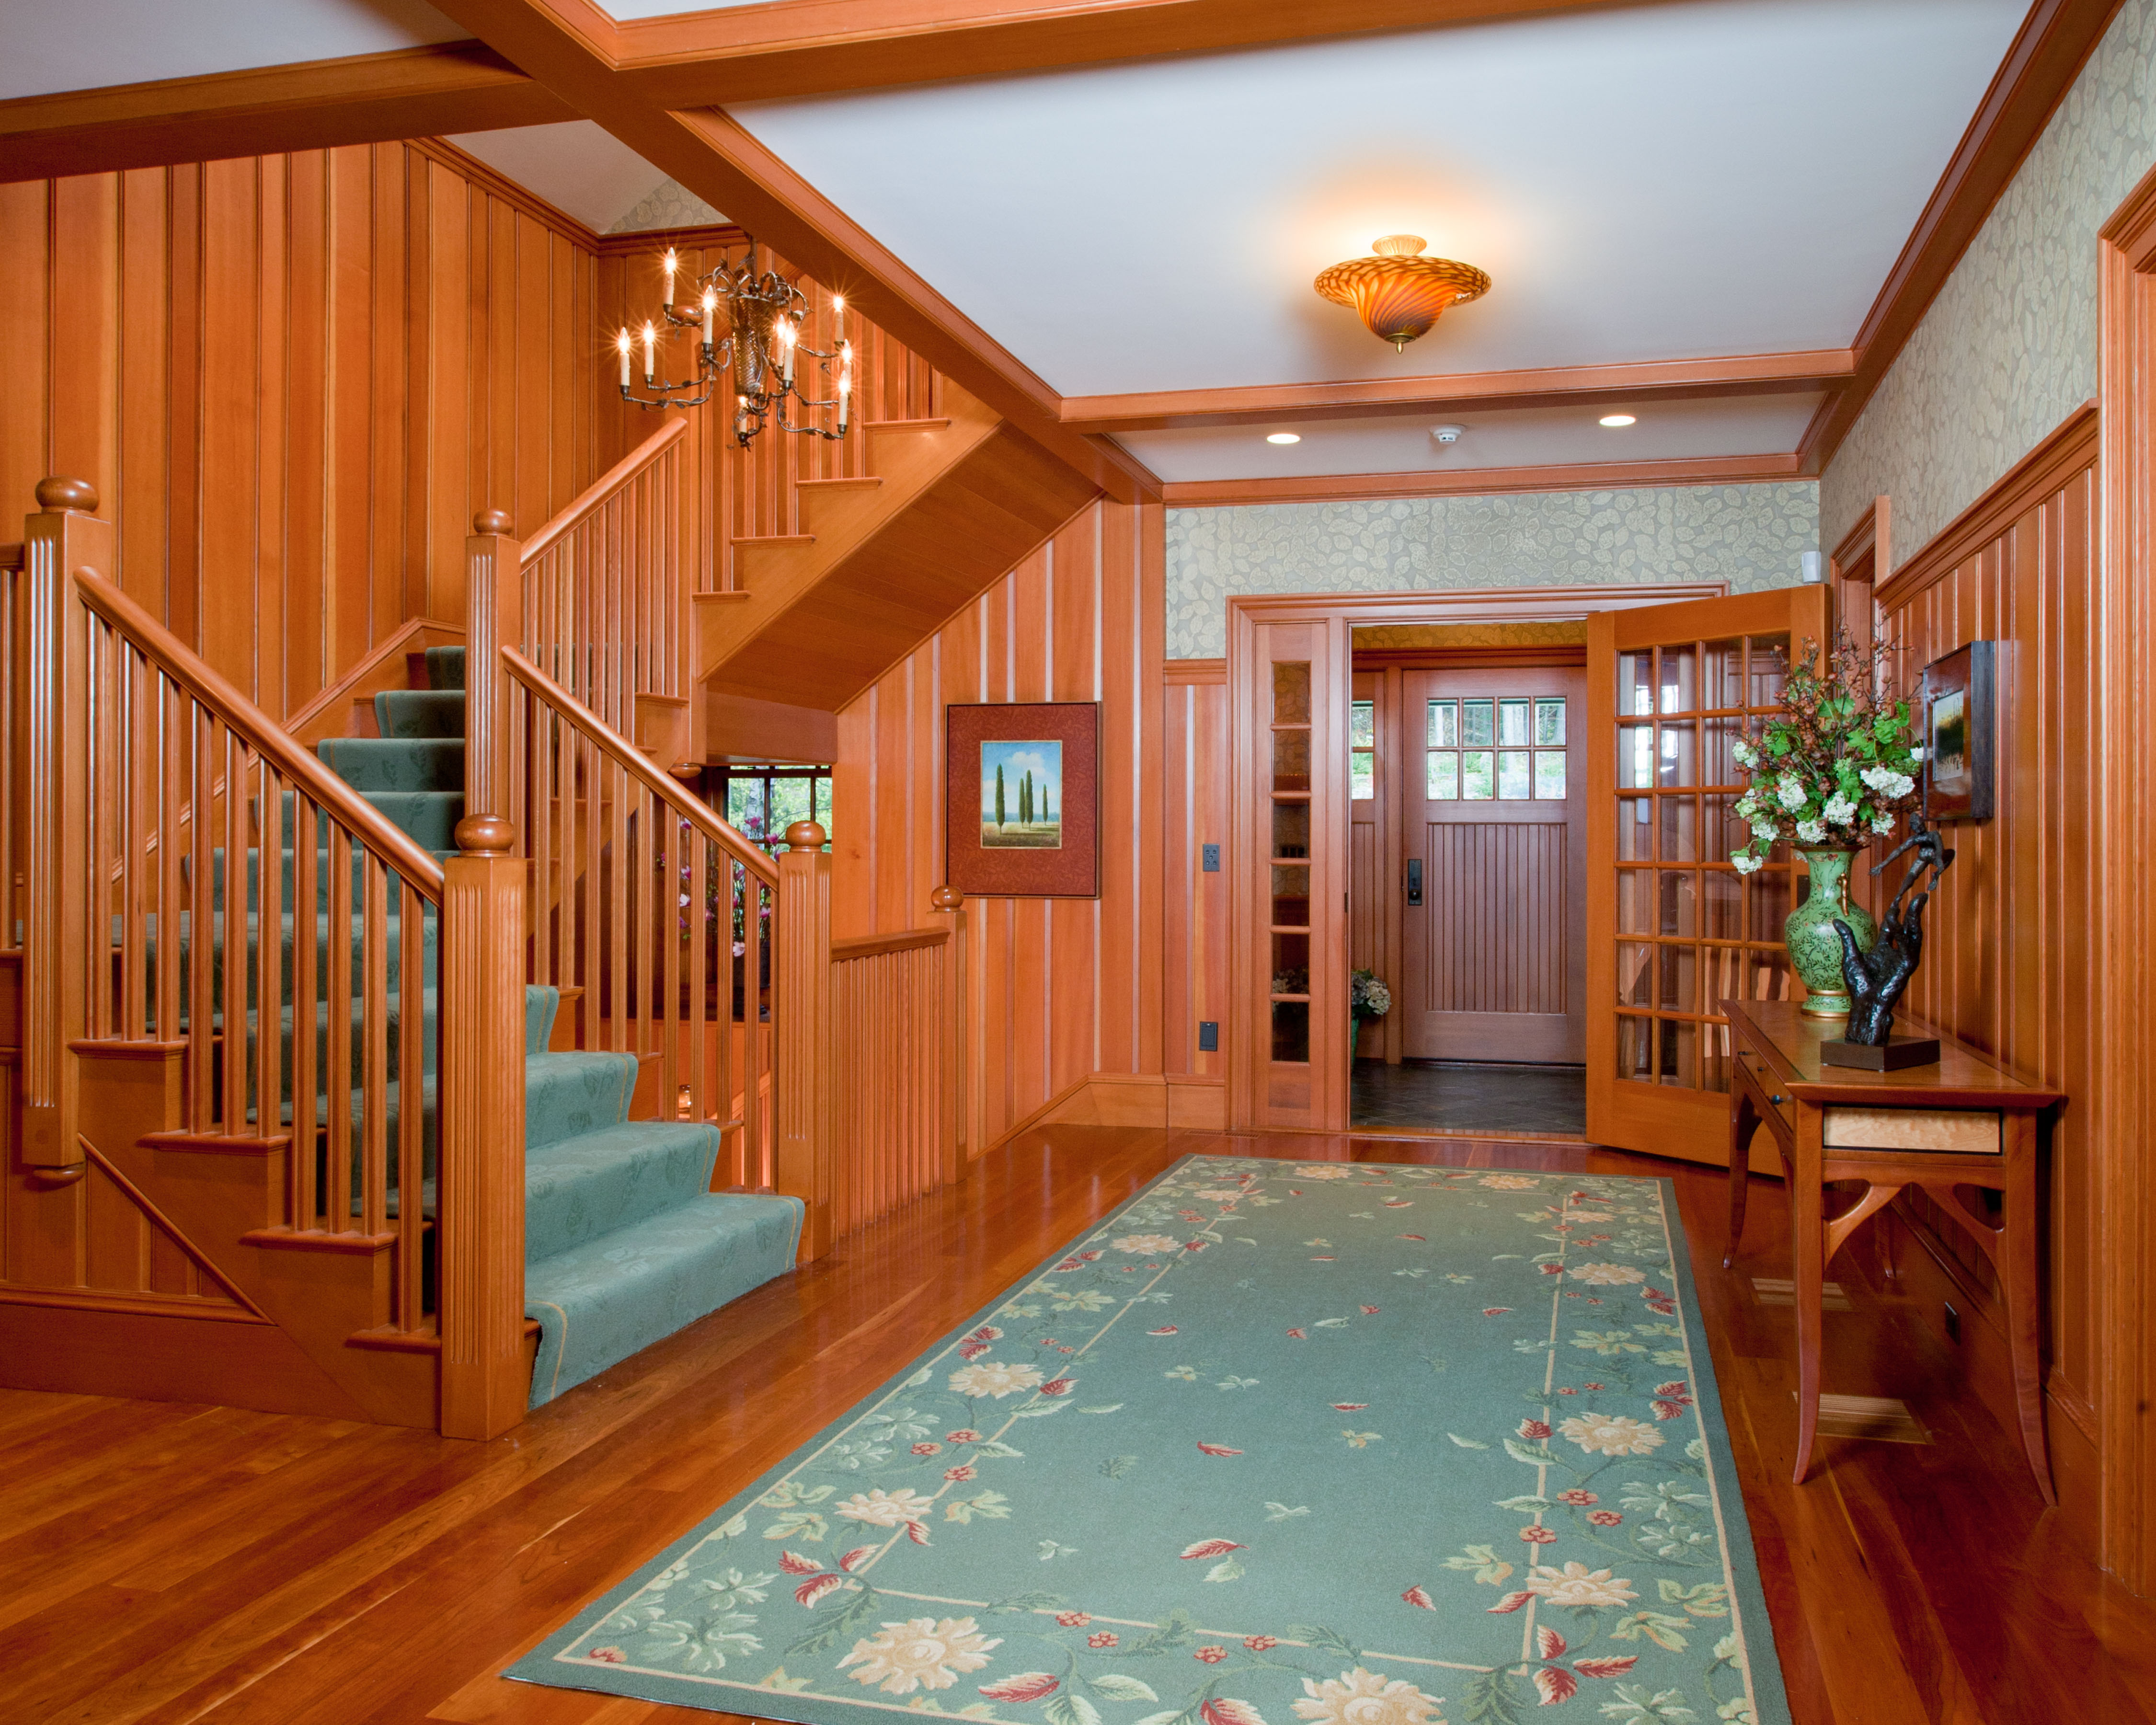 In order to sell your home, if wood floors are showing wear, consider refinishing them. If damage is minimal, use a clever arrangement of area rugs to hide the worn areas. Have all rugs and carpets cleaned, especially if you have pets.